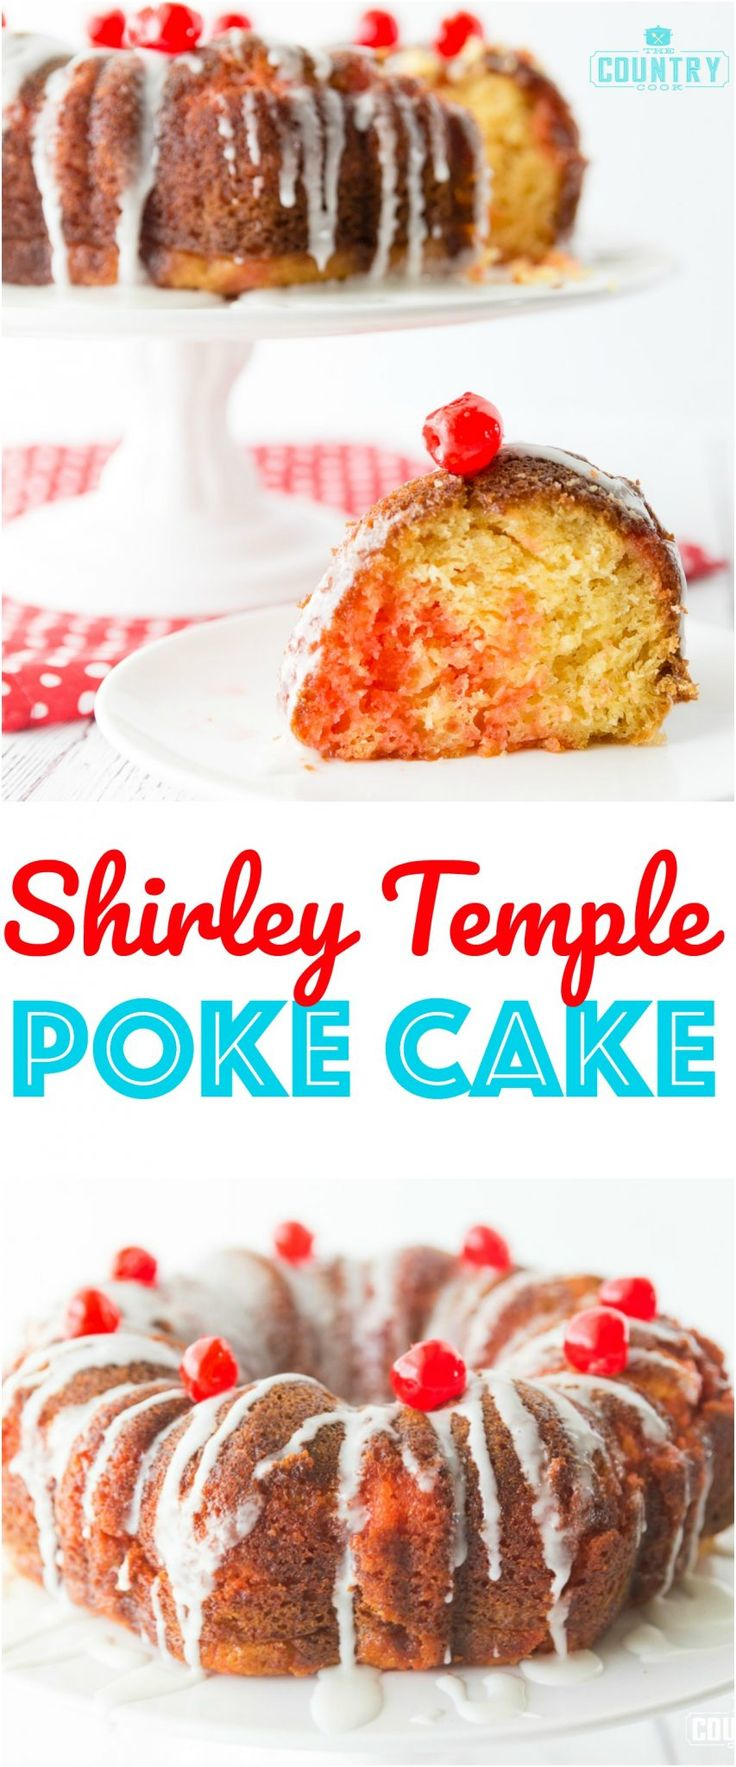 Shirley Temple Poke Cake recipe from The Country Cook